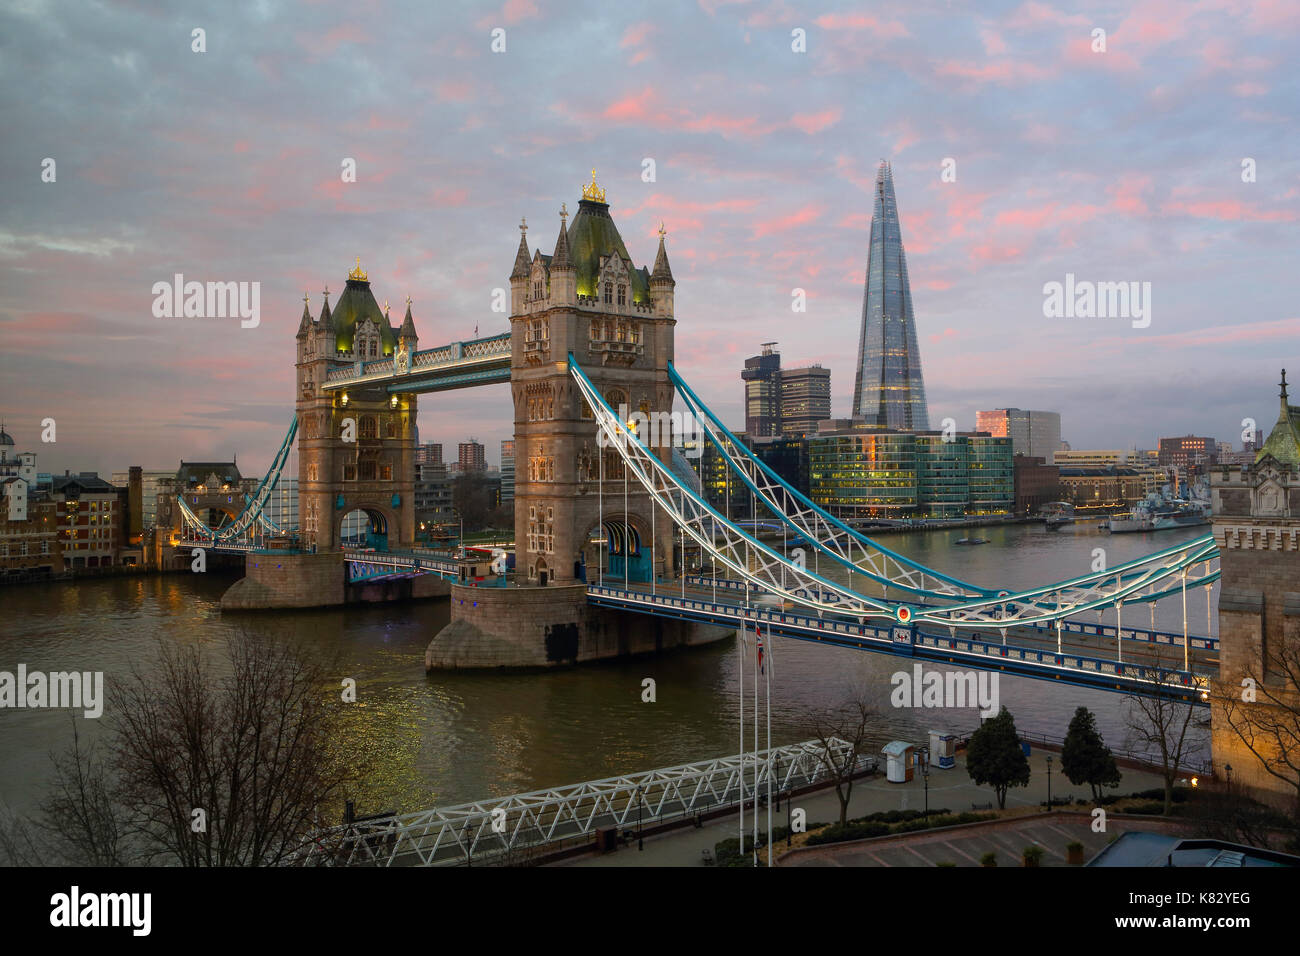 Tower Bridge and the Shard in London; UK. The Shard at 310m or over 1000 feet tall; is the tallest building in Europe - Stock Image